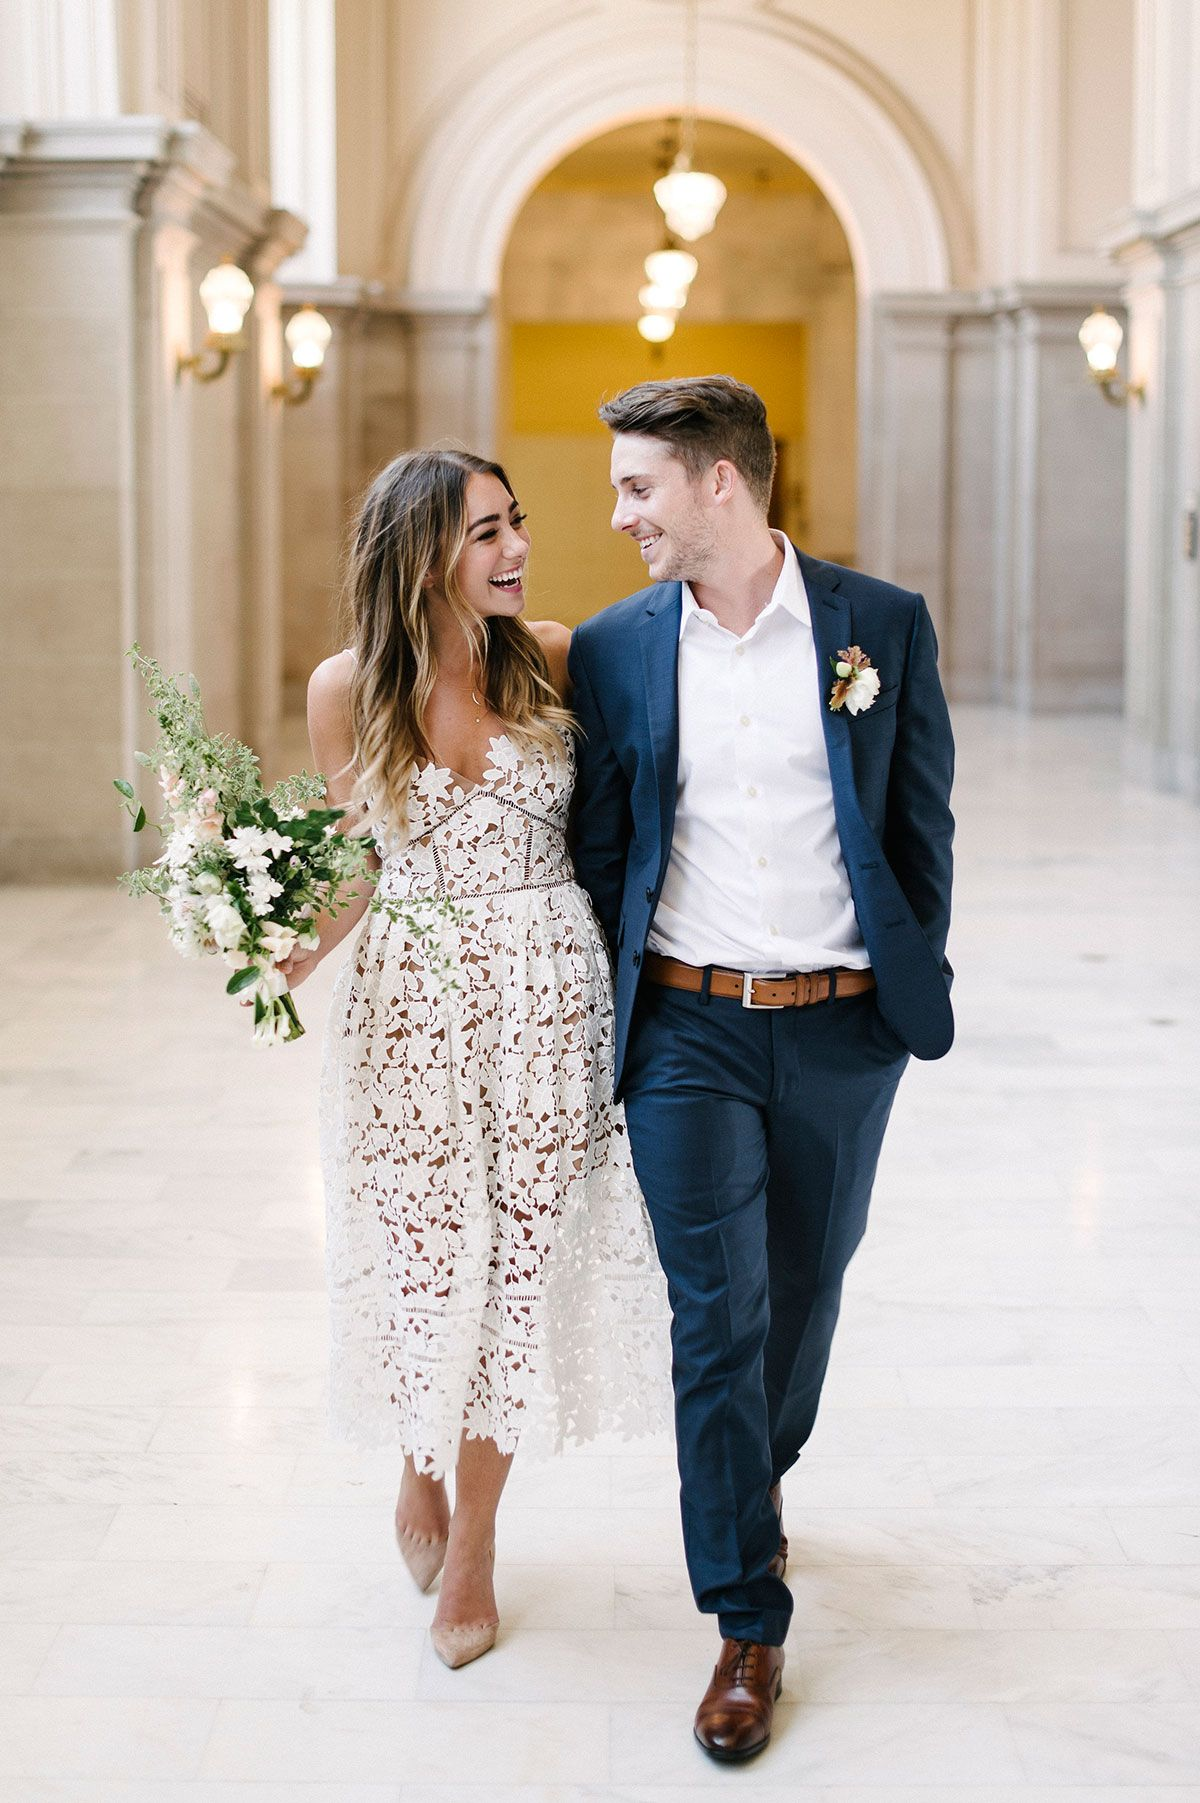 Ten City Hall Wedding Tips Bride And Groom Photography Elopement Ideas Dresseswedding Wearcausal